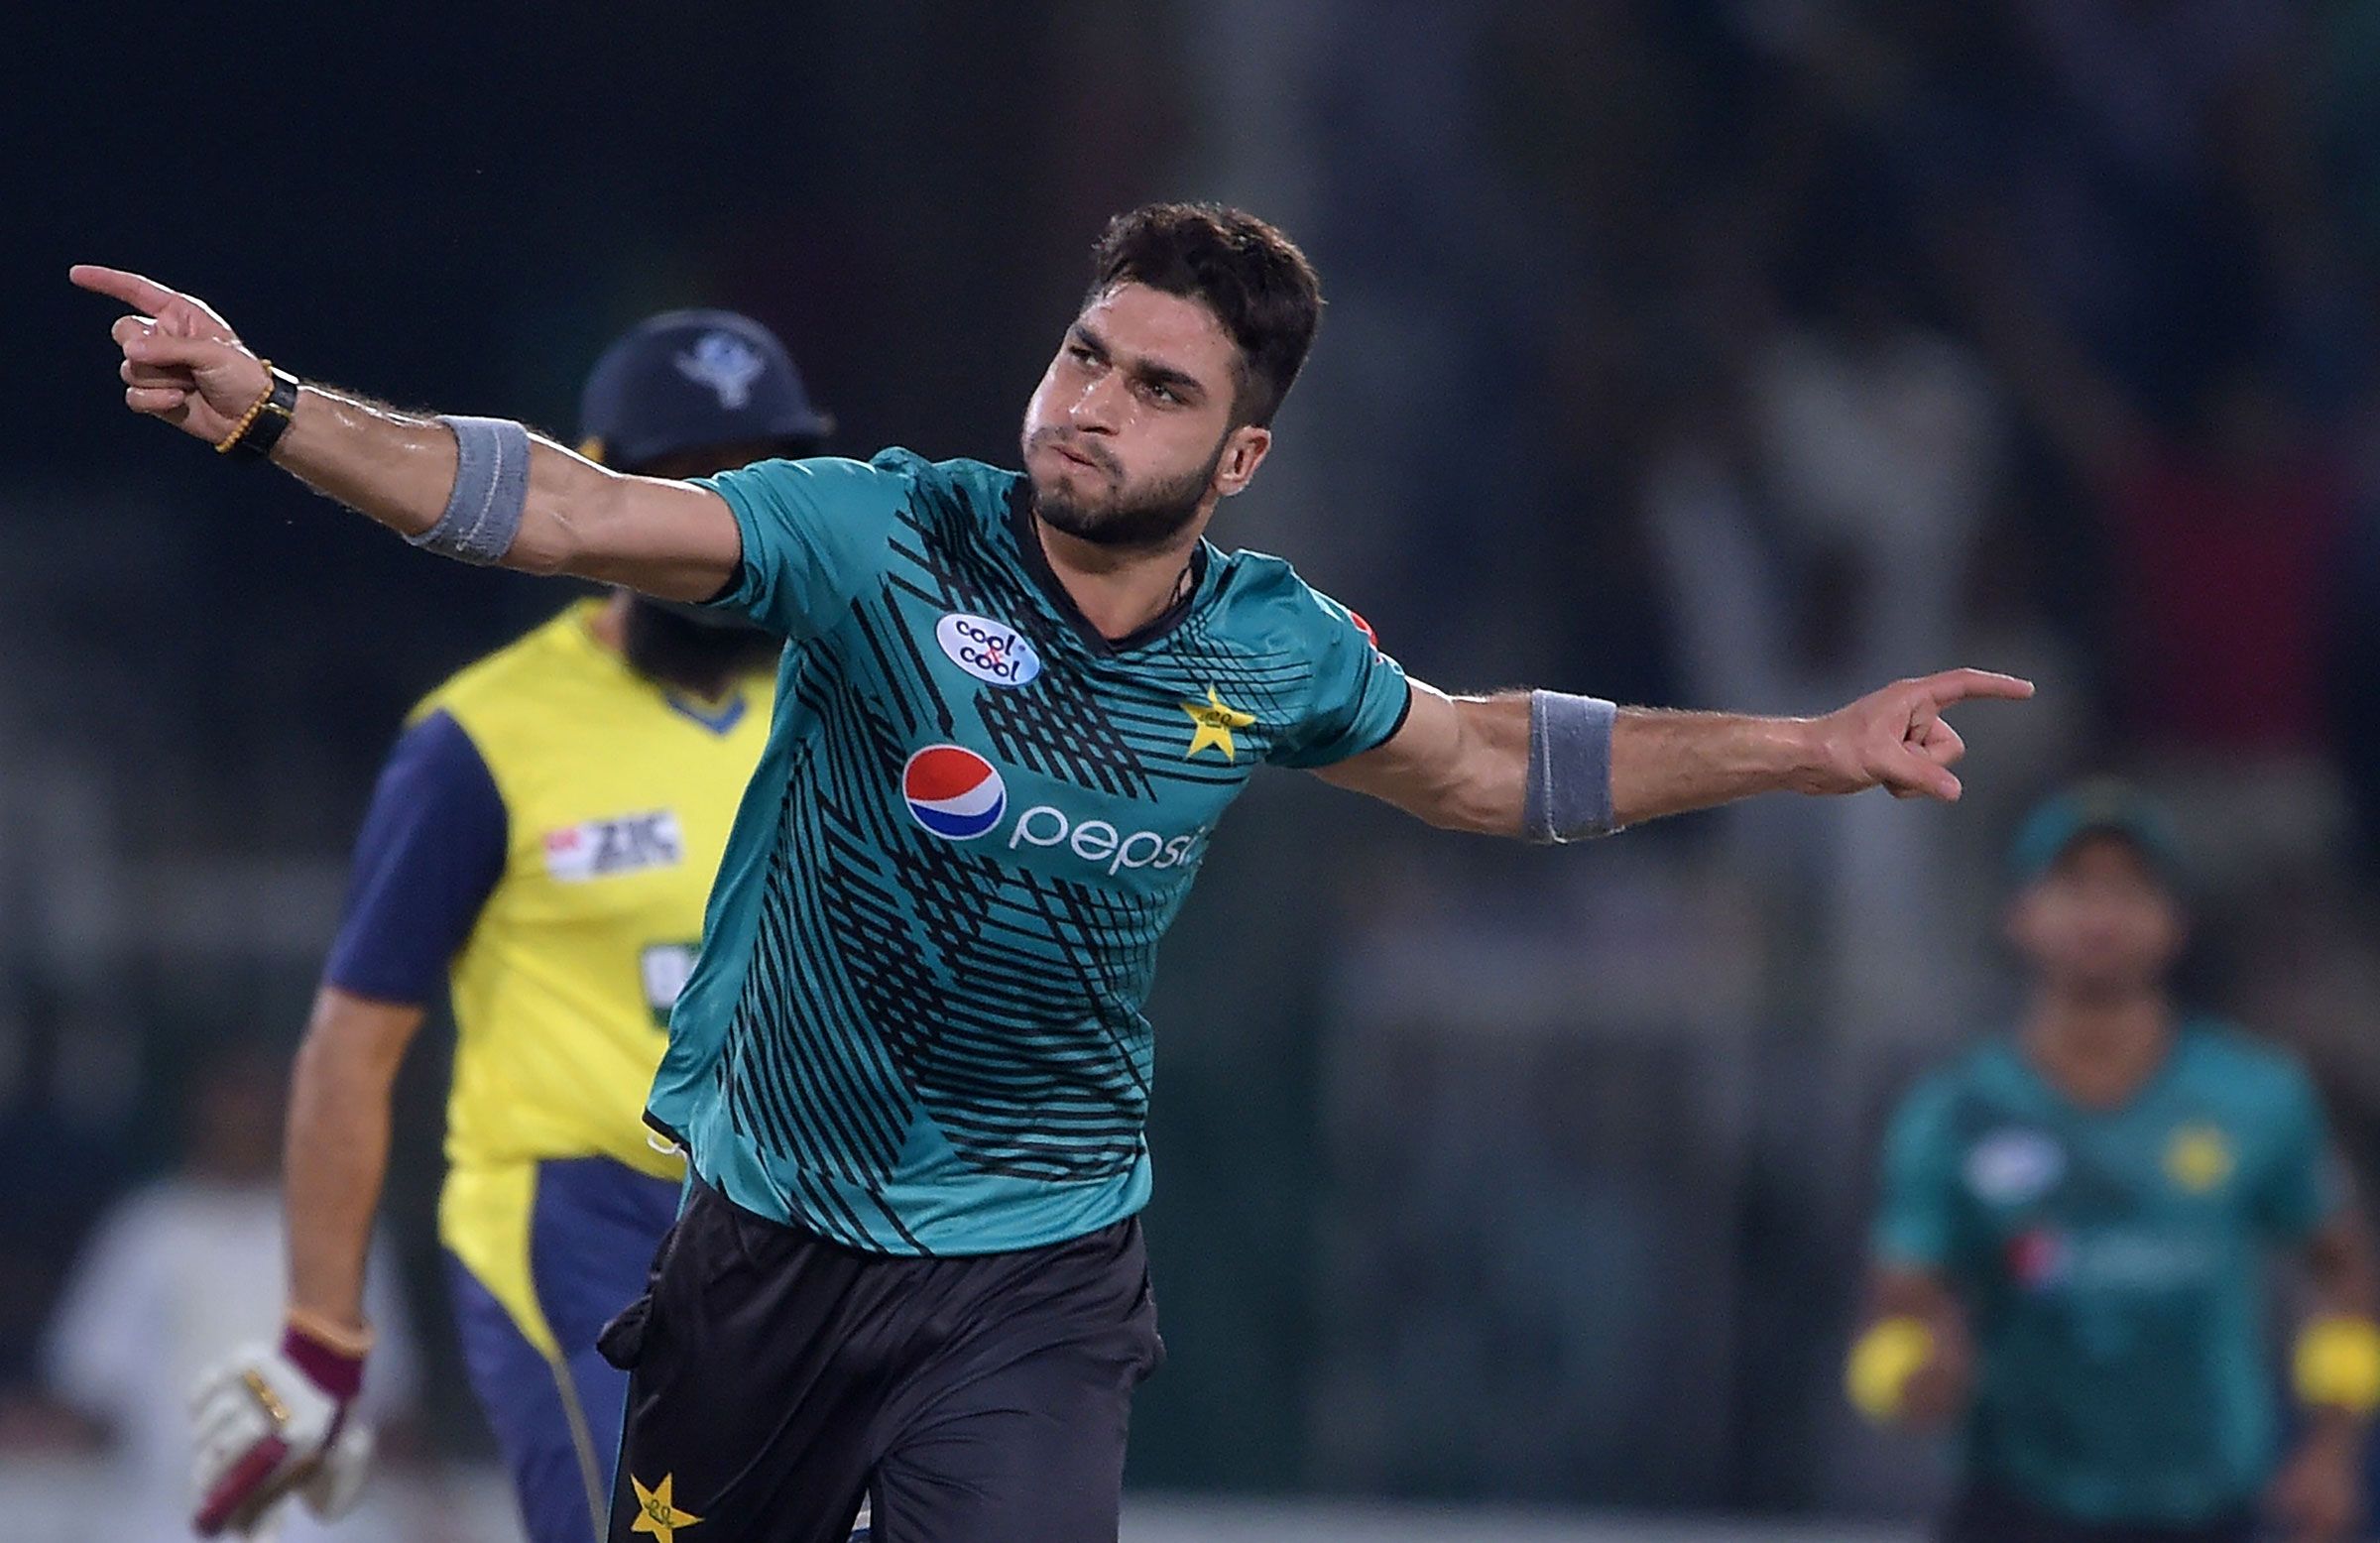 Usman Khan Shinwari celebrates after taking the wicket of World XI batsman Tamim Iqbal // Getty